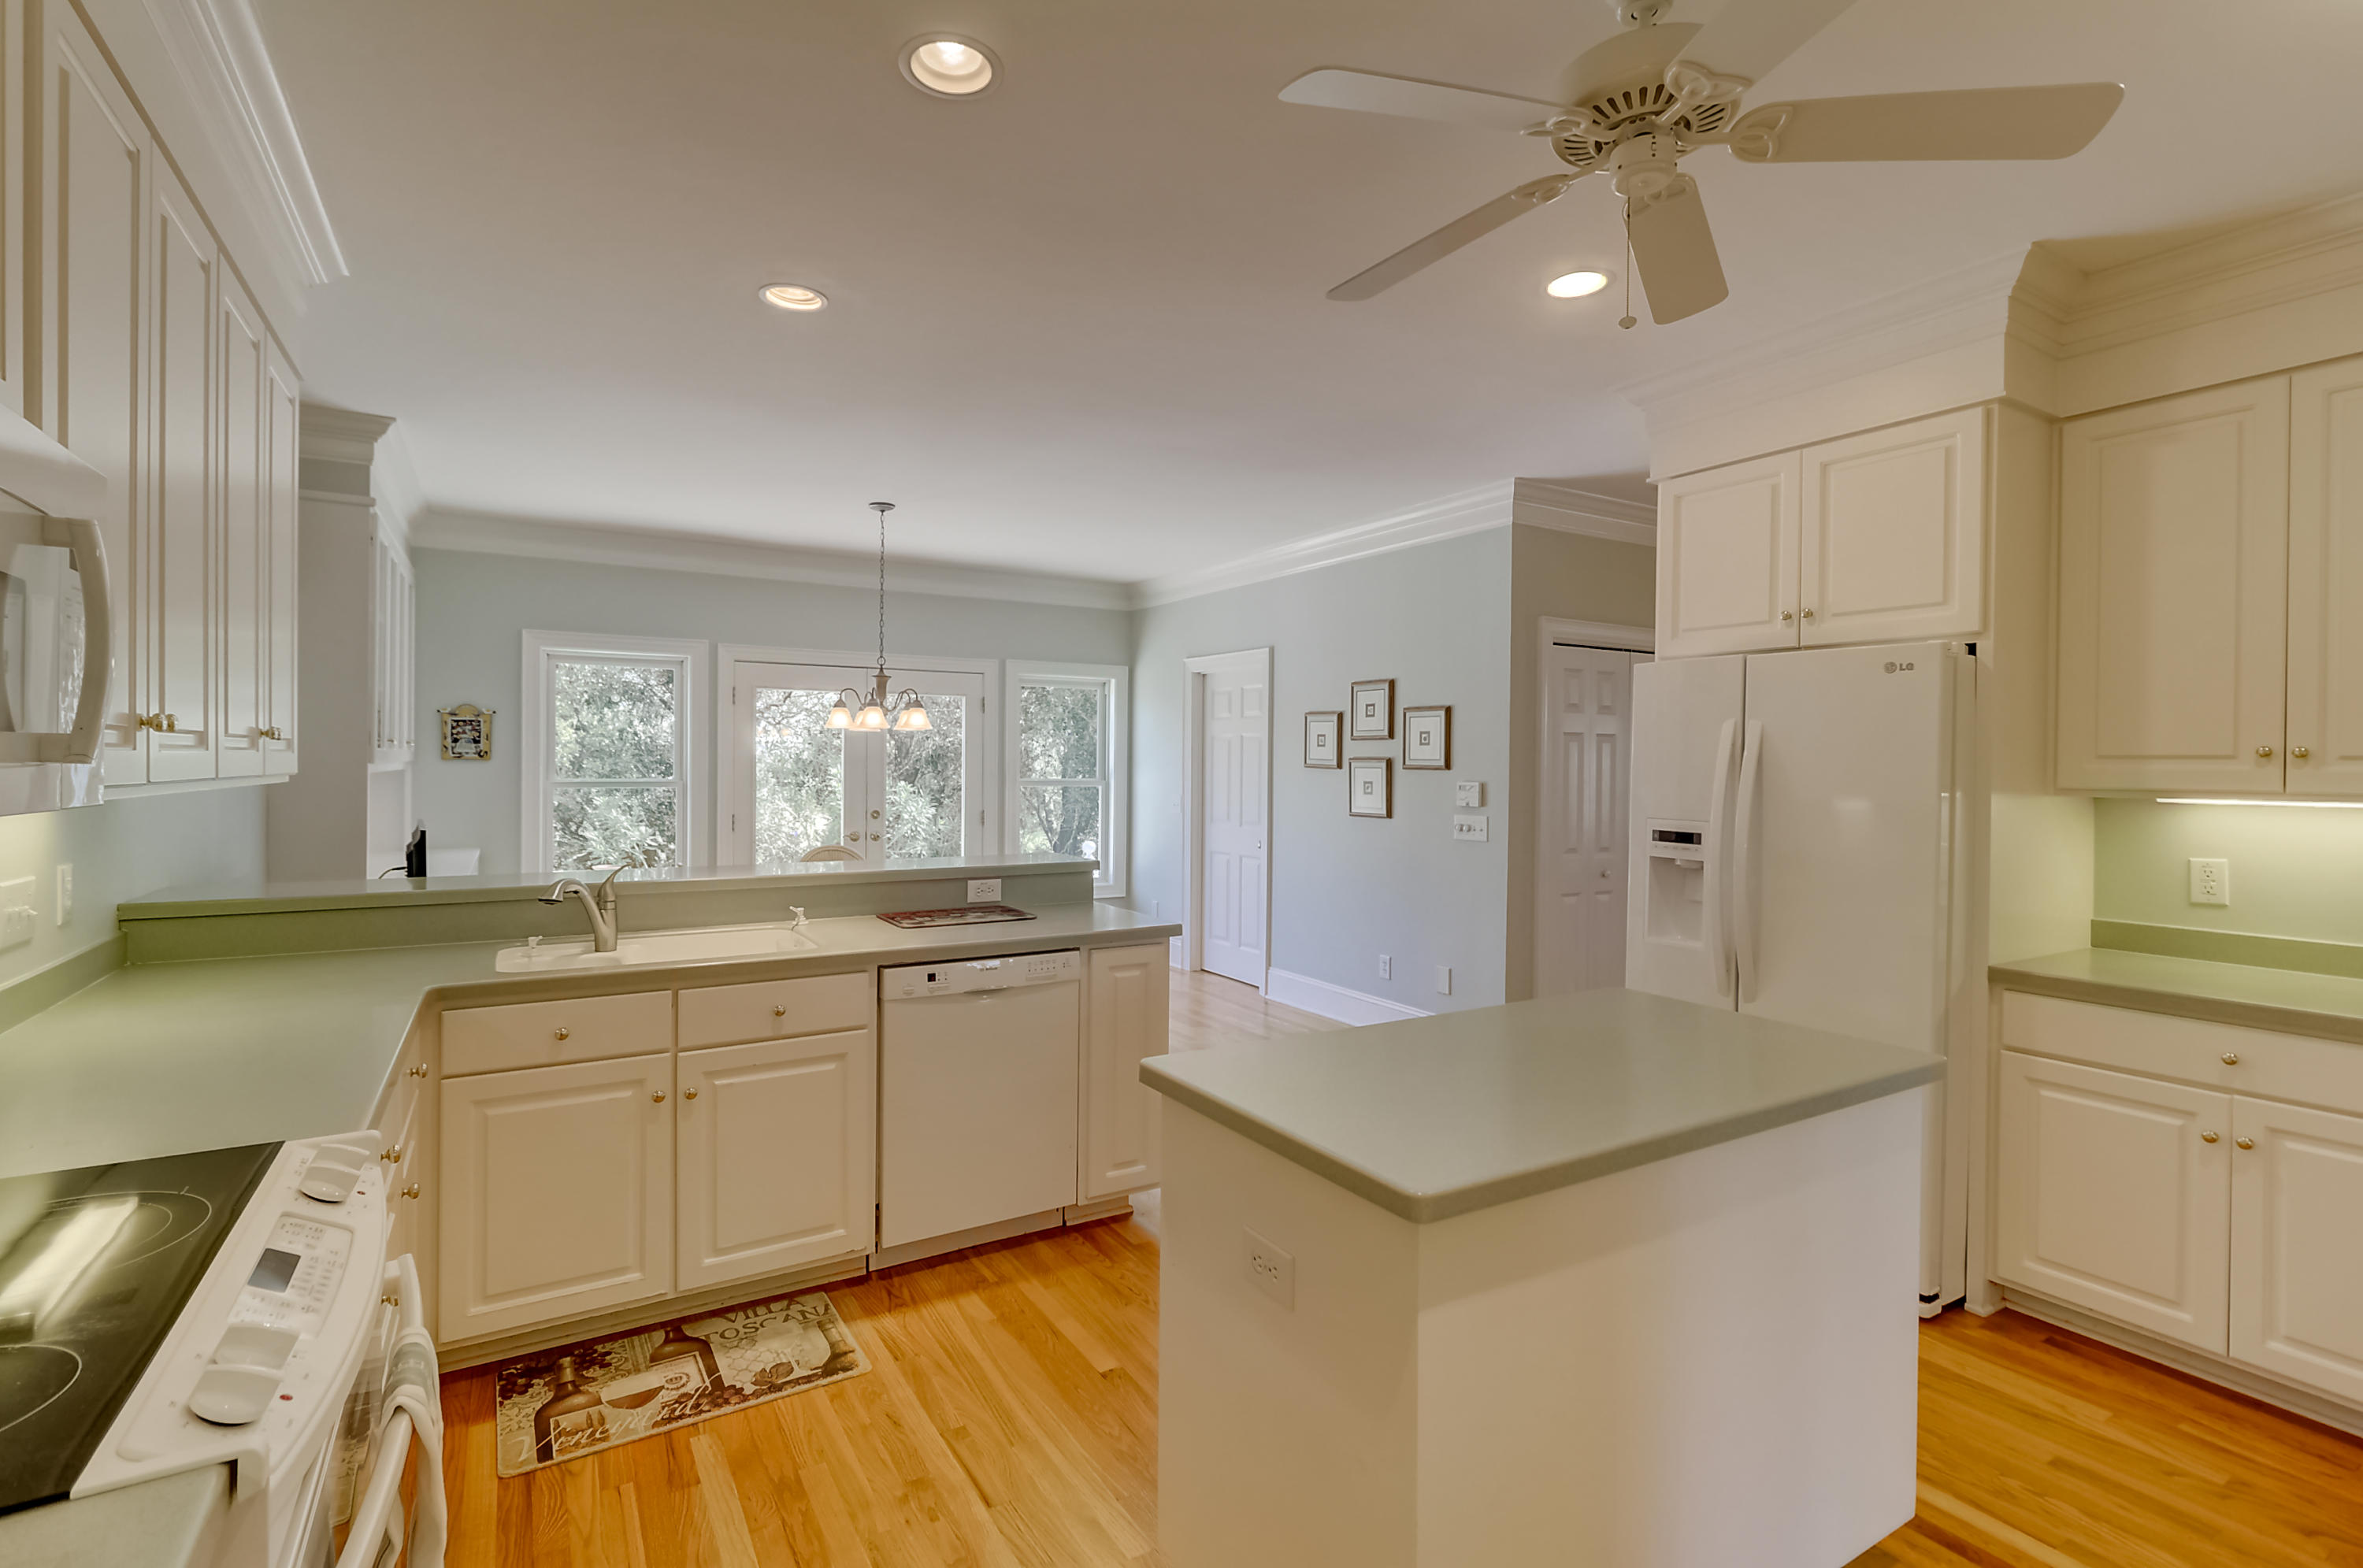 Stratton Place Homes For Sale - 1494 Stratton, Mount Pleasant, SC - 74